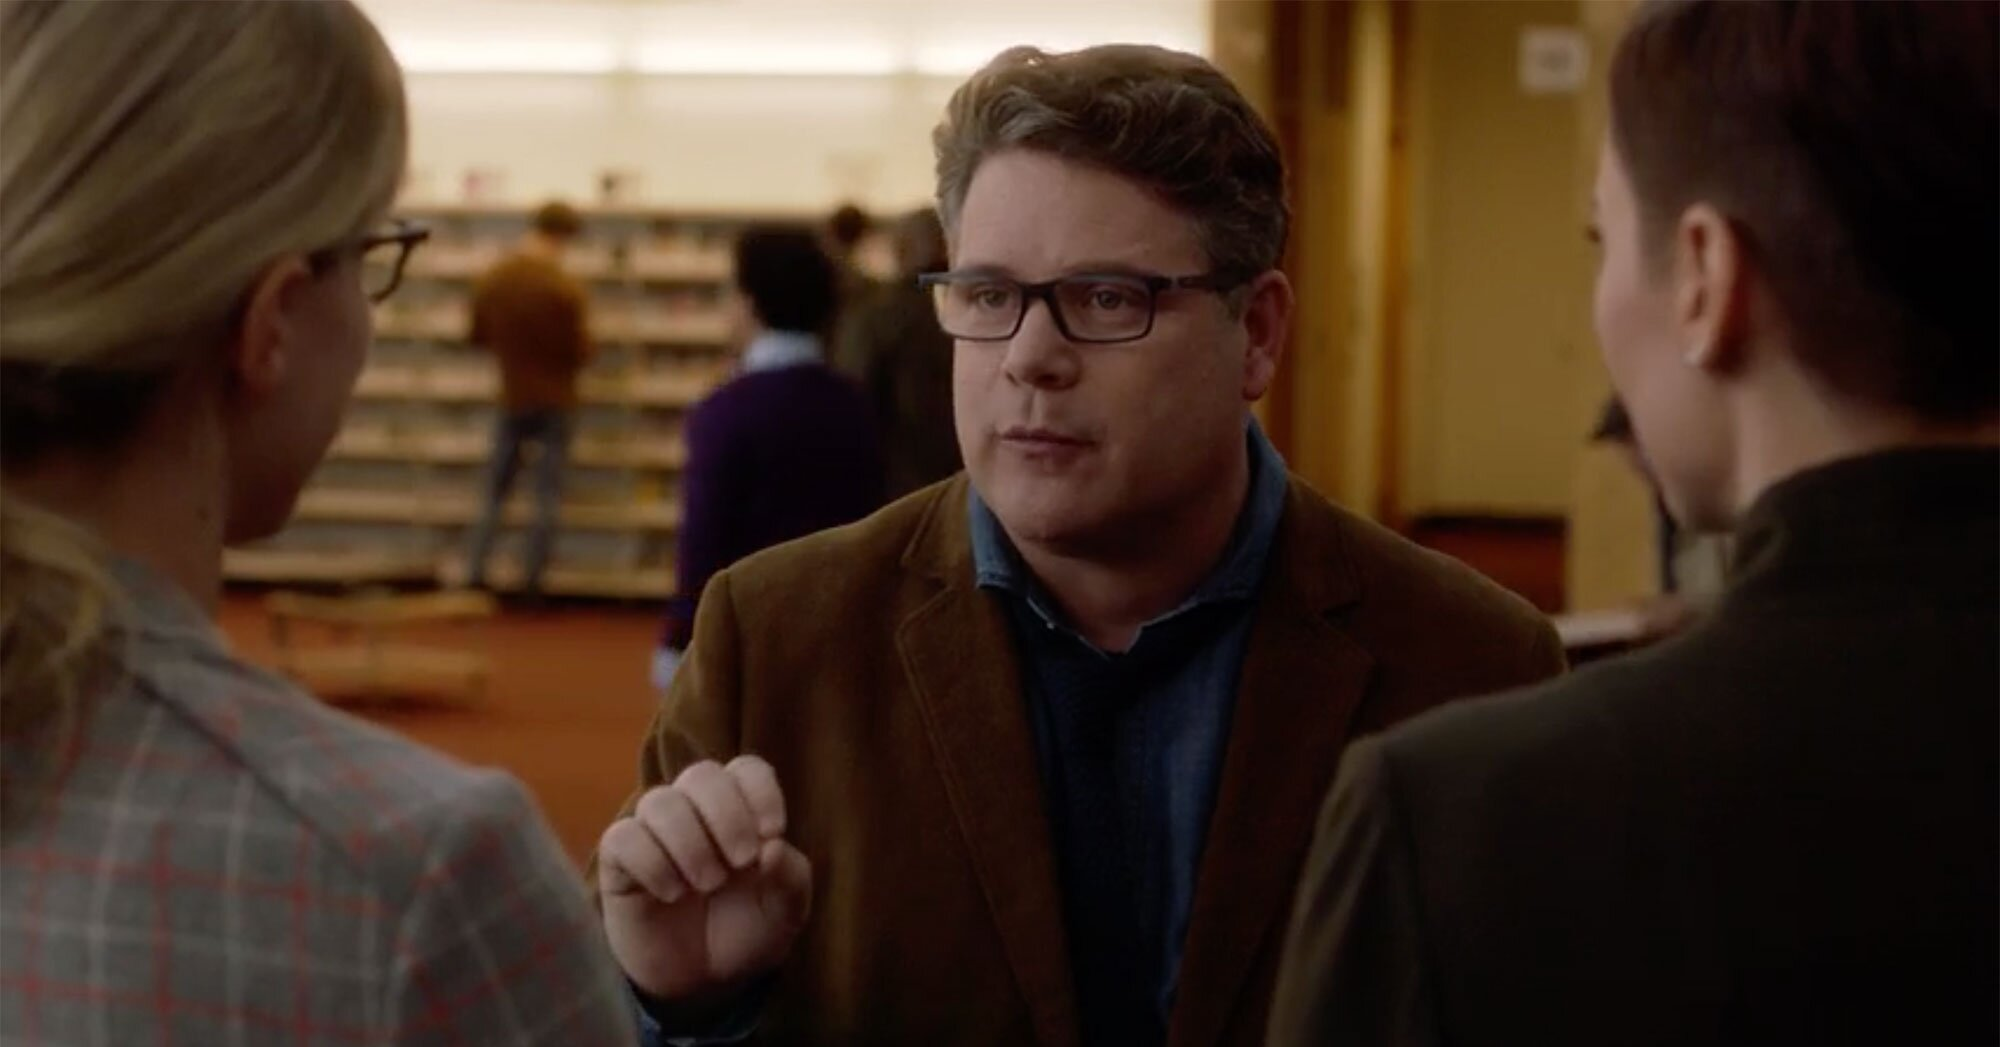 Sean Astin returns to Supergirl in exclusive sneak peek